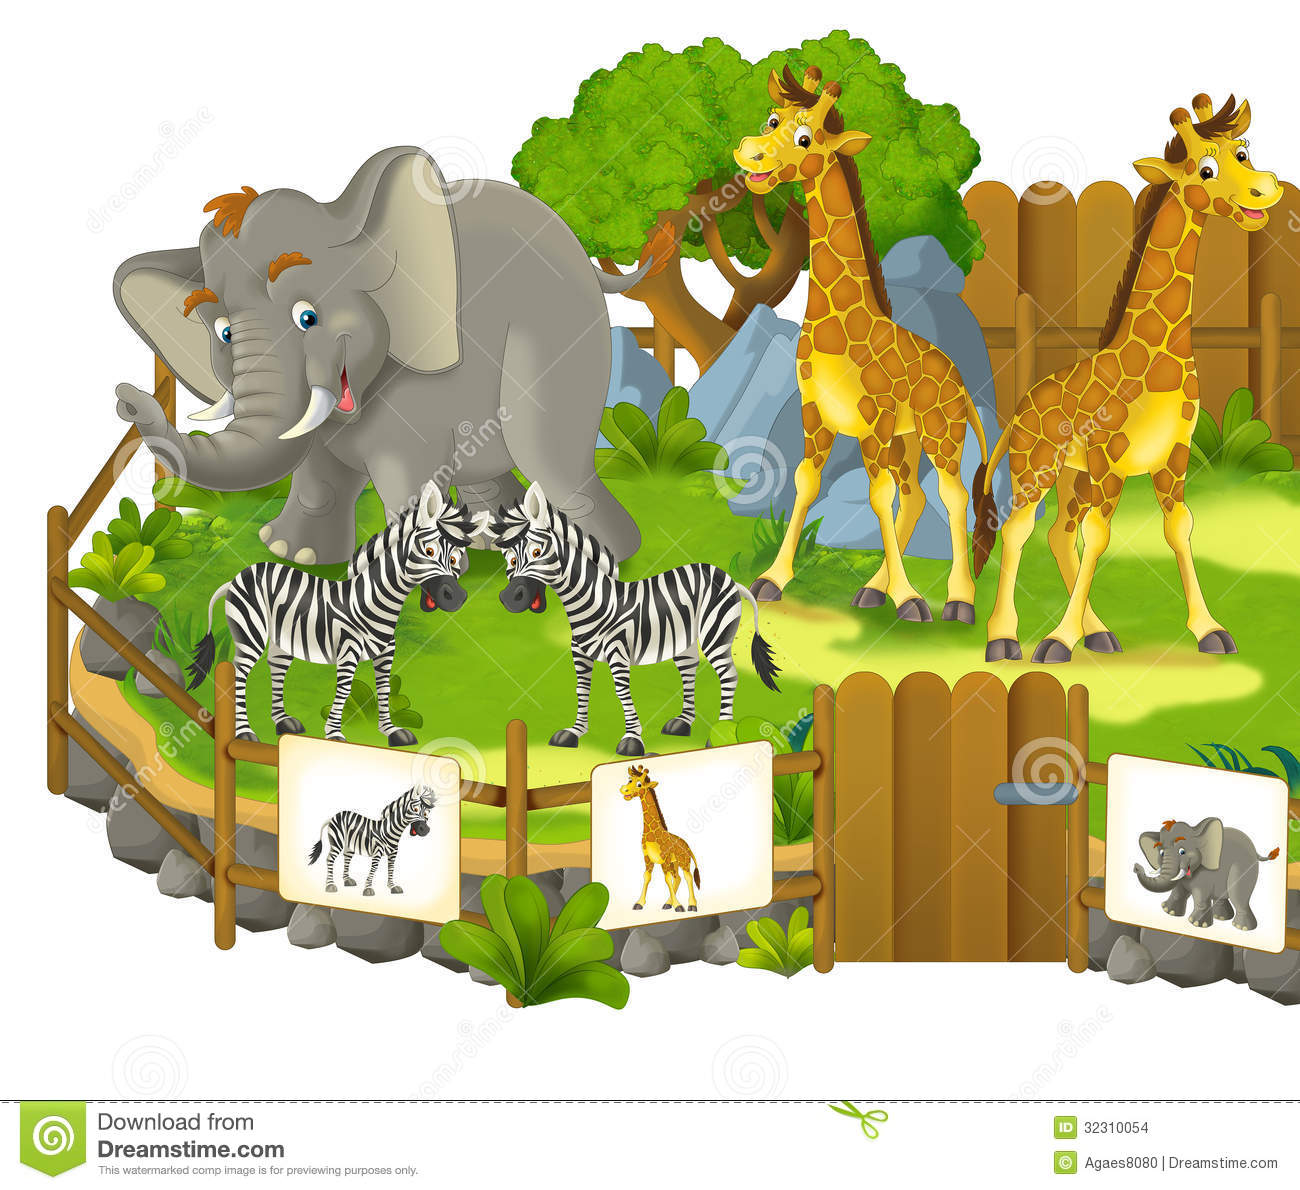 Download Park Zoo Clipart-Download Park Zoo Clipart-1